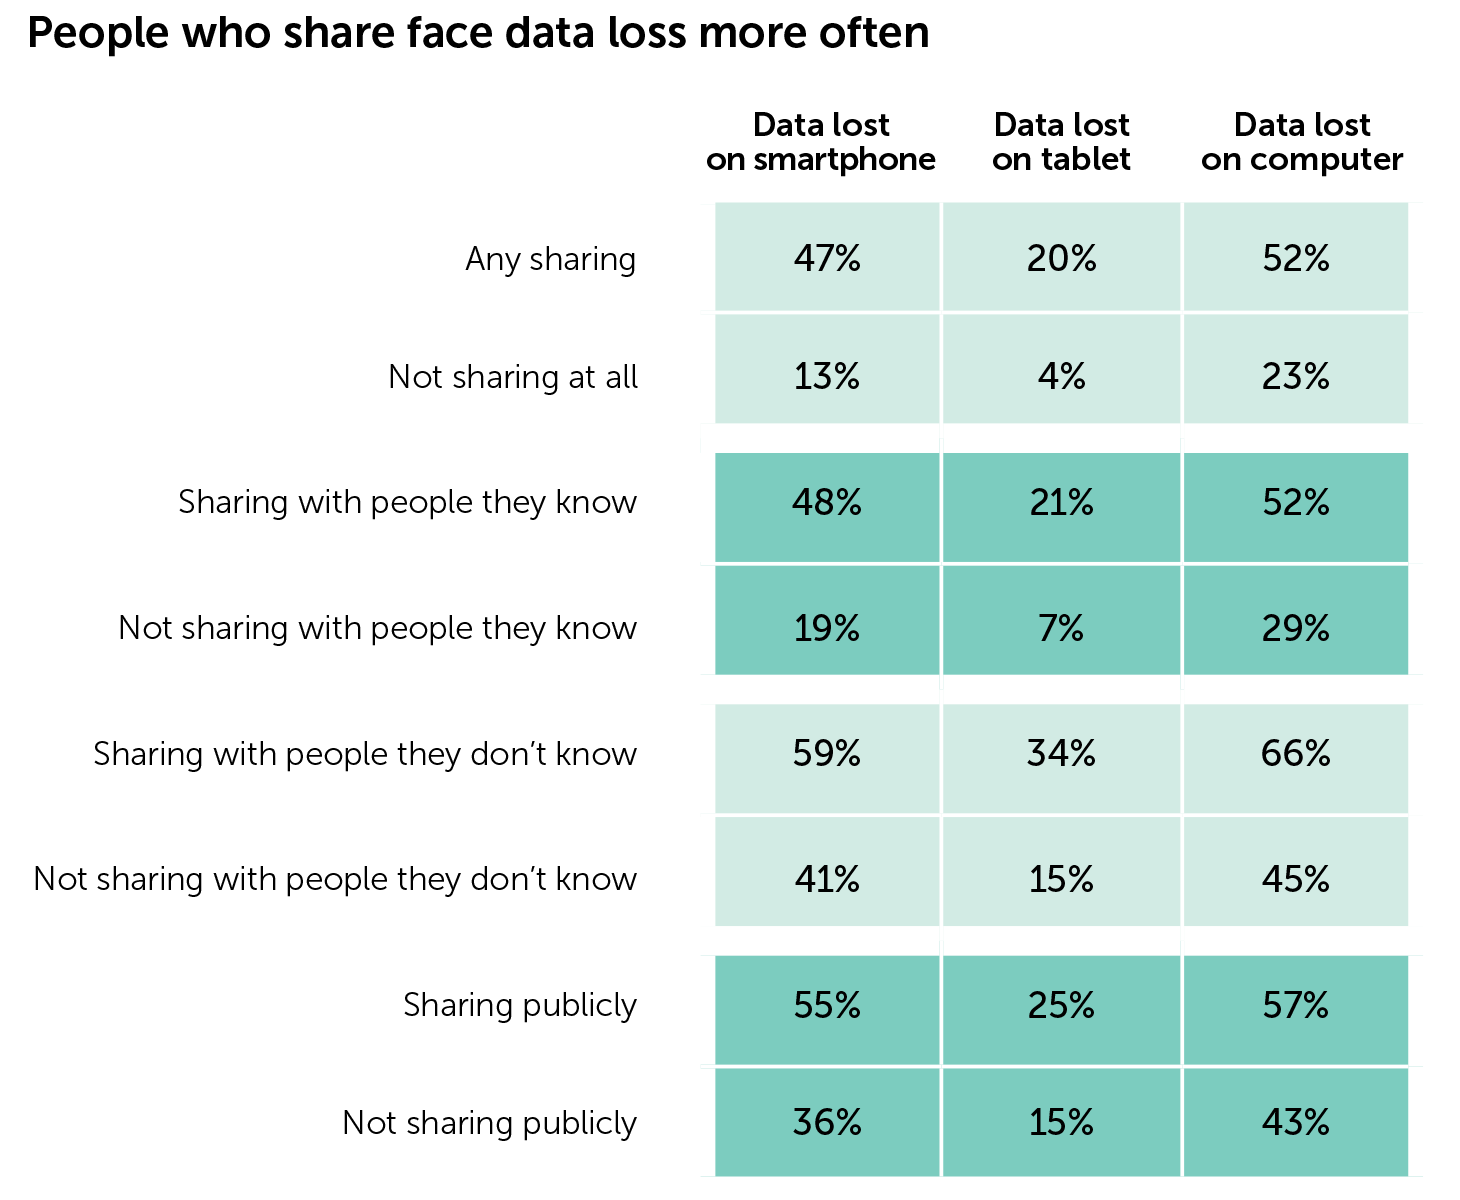 People who share face data loss more often